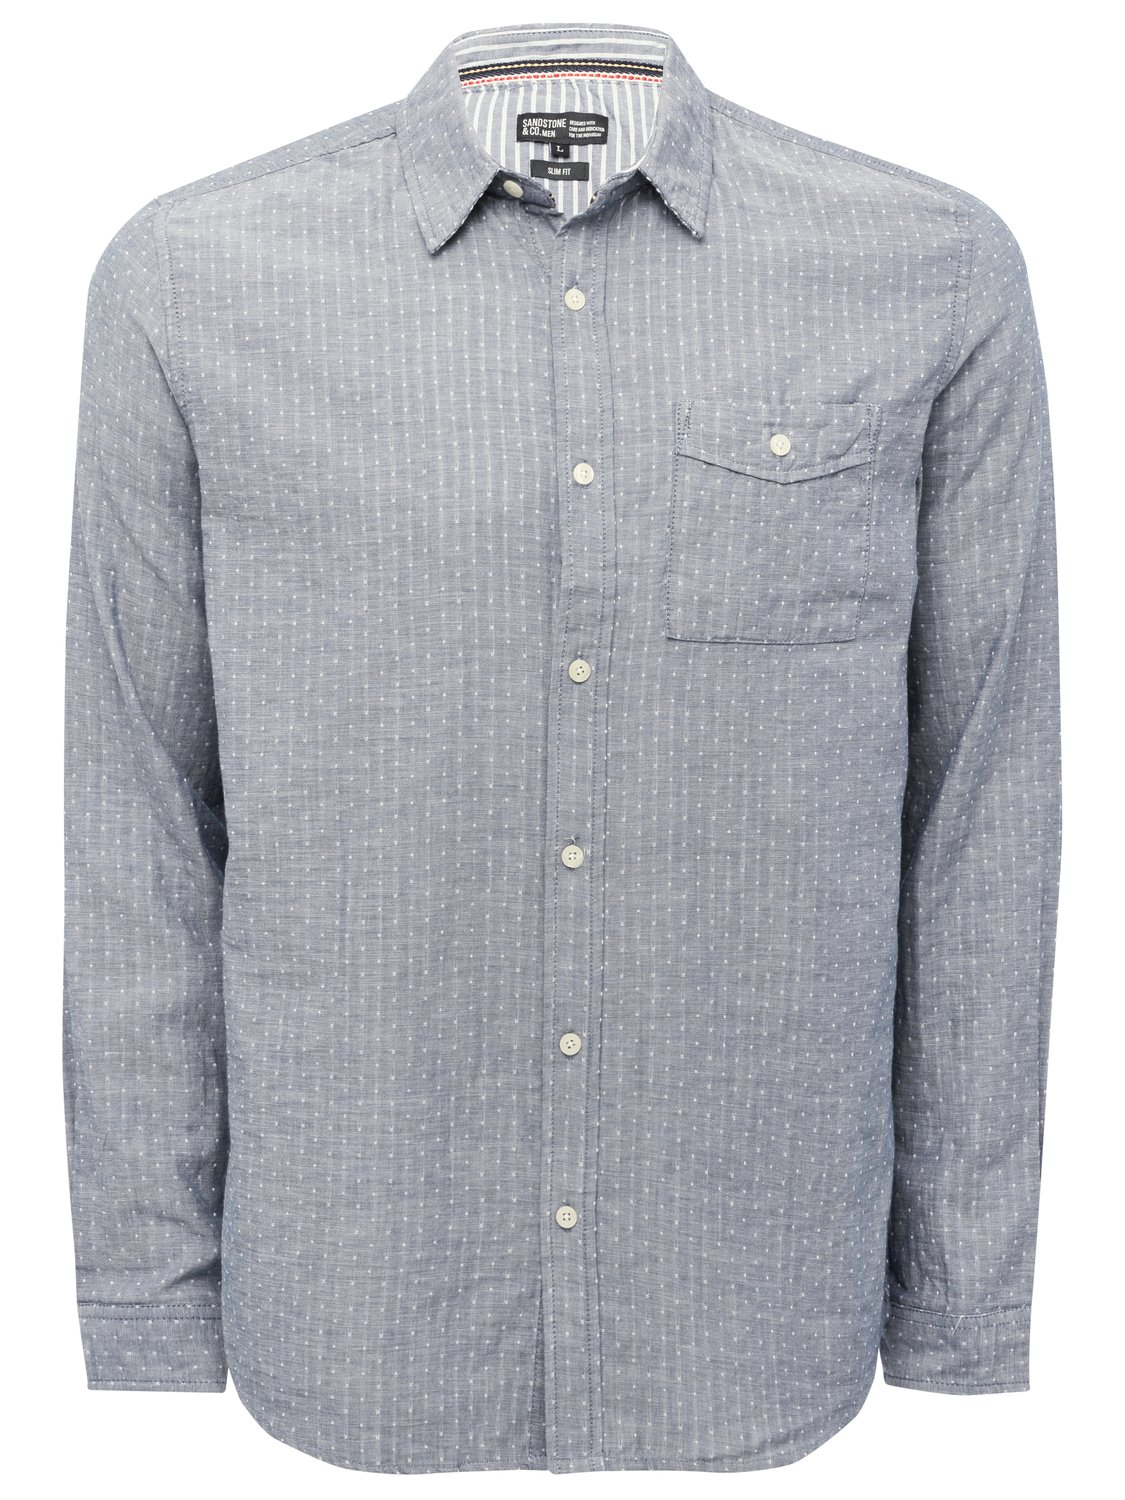 Image of Mens 100% Cotton Denim Chambray Spot Print Long Sleeve Chest Pocket Smart Casual Shirt - Denim